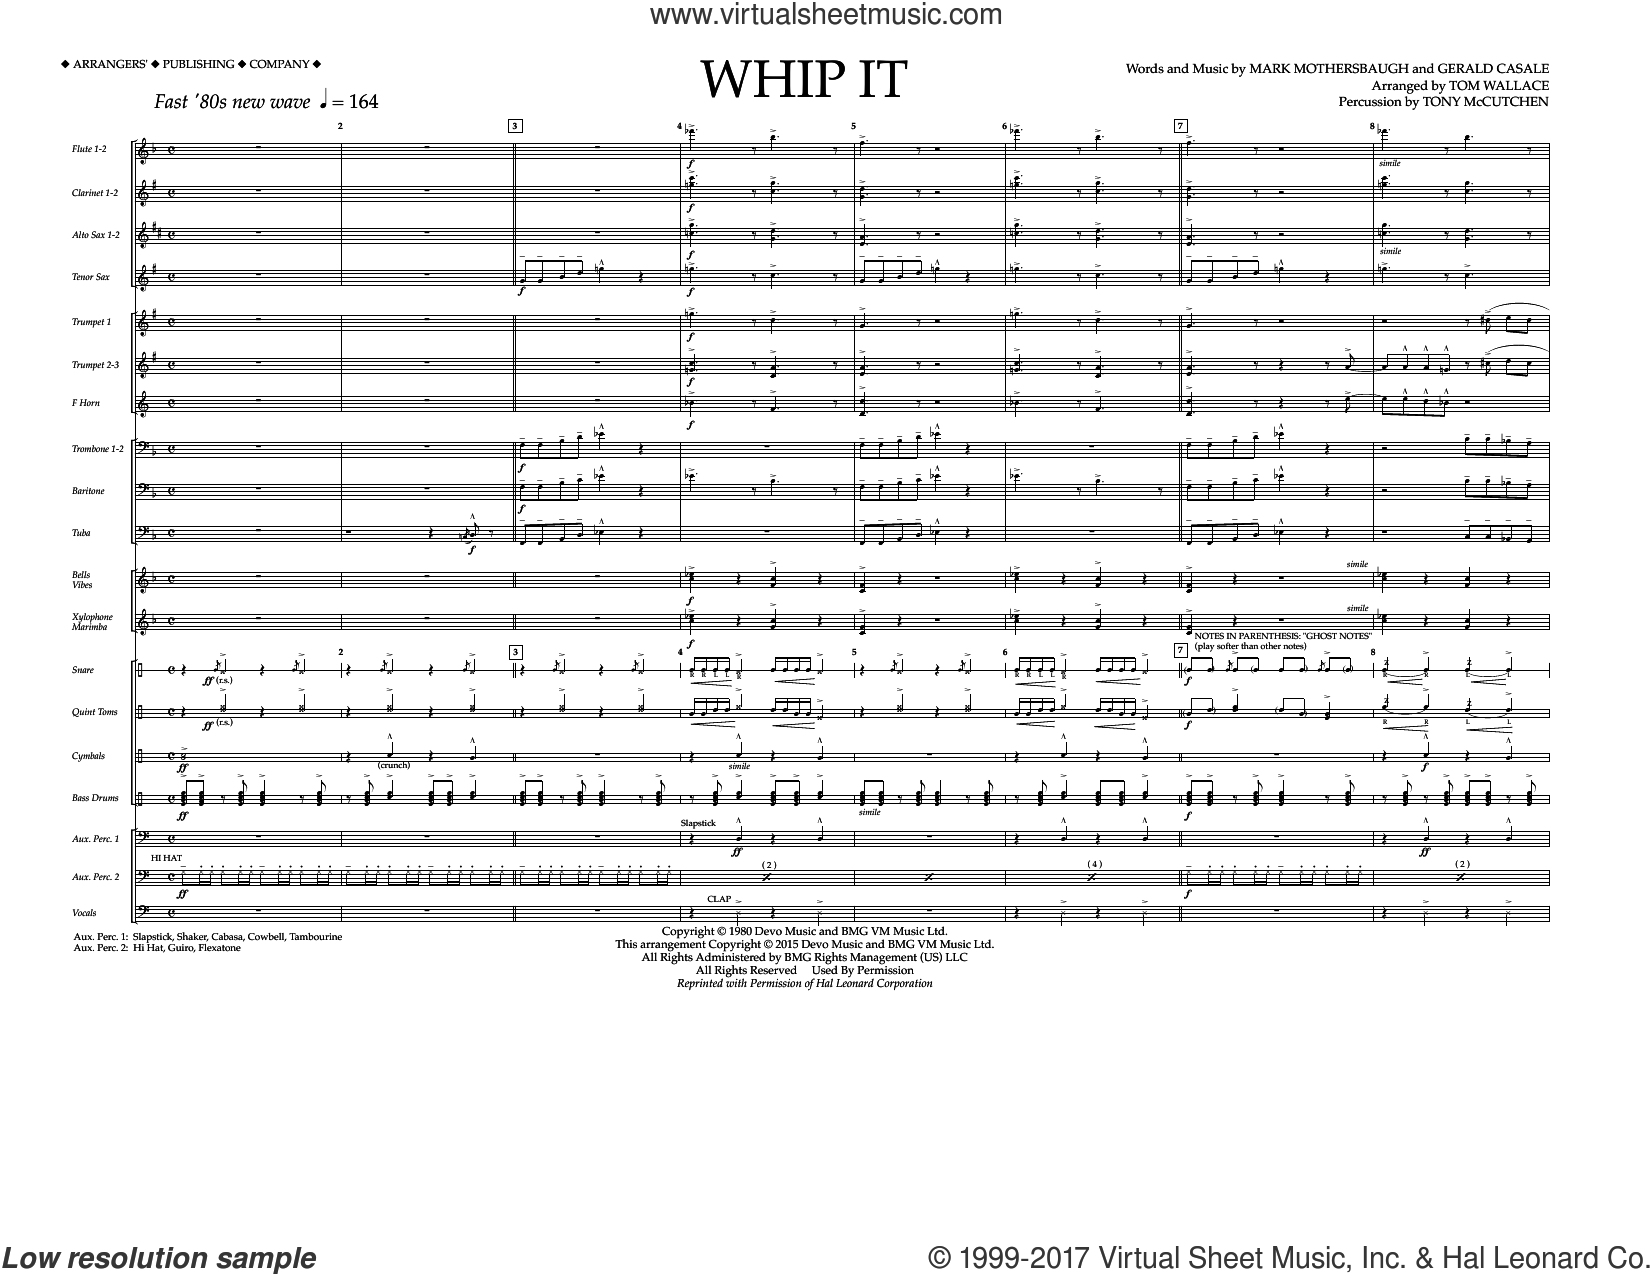 Whip It (COMPLETE) sheet music for marching band by Tom Wallace, Devo, Gerald Casale and Mark Mothersbaugh, intermediate skill level